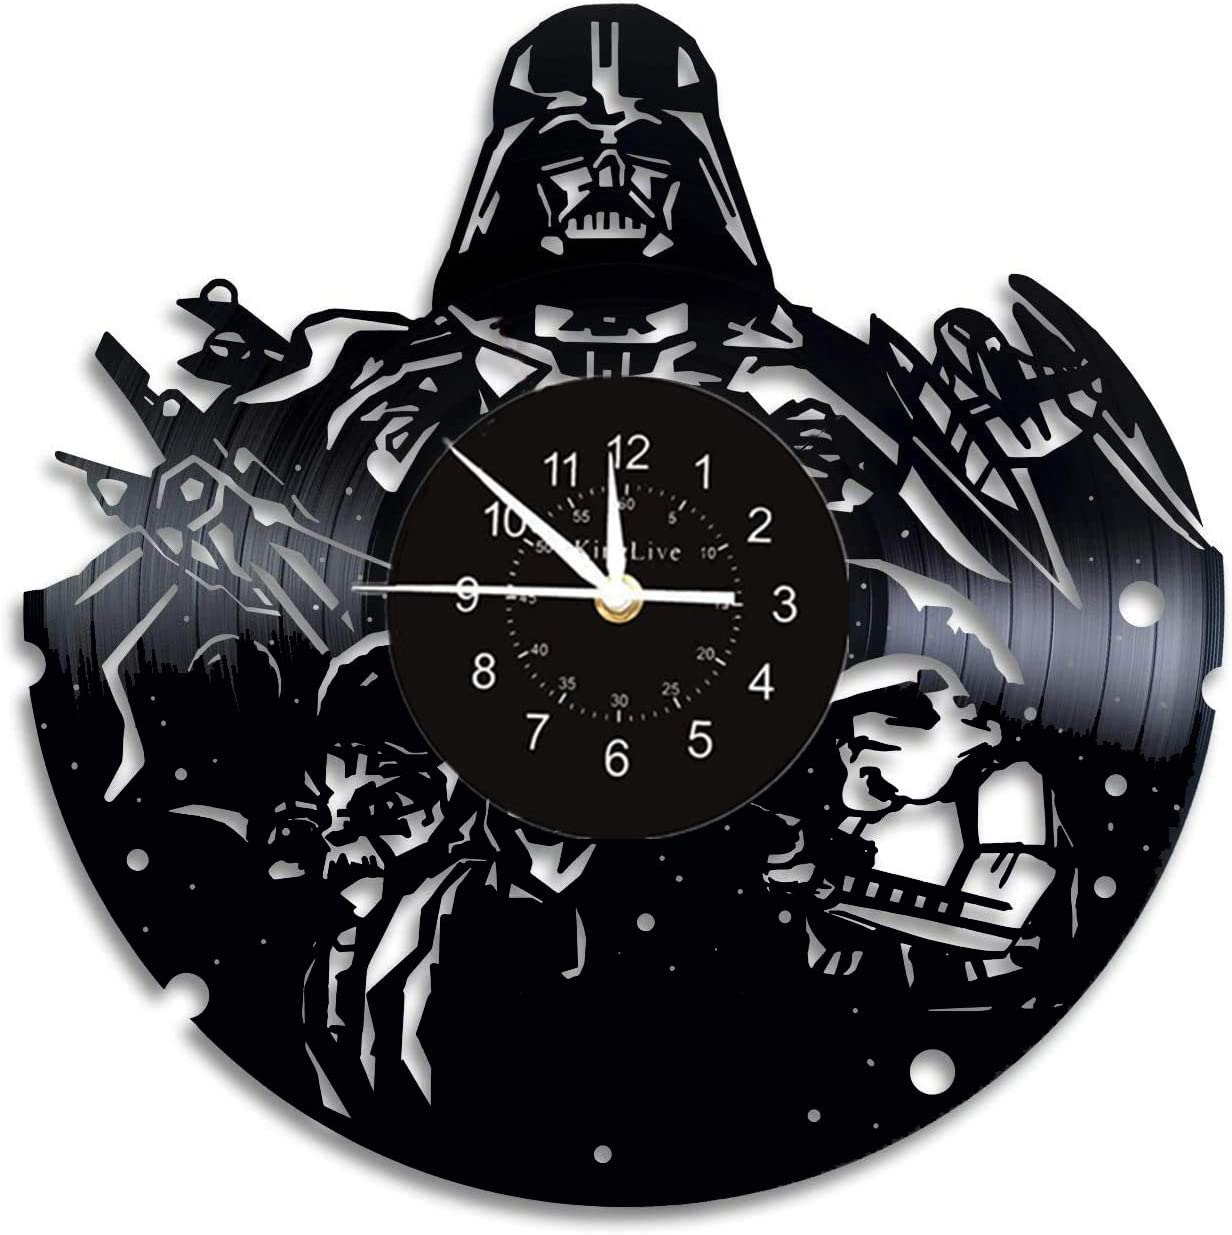 Vinyl Record Wall Clock with Star Wars Design 12 inch Wall Clock 3D Hanging Wall Watch Home Decor Wall Art Best Gift for Friends Home Decoration